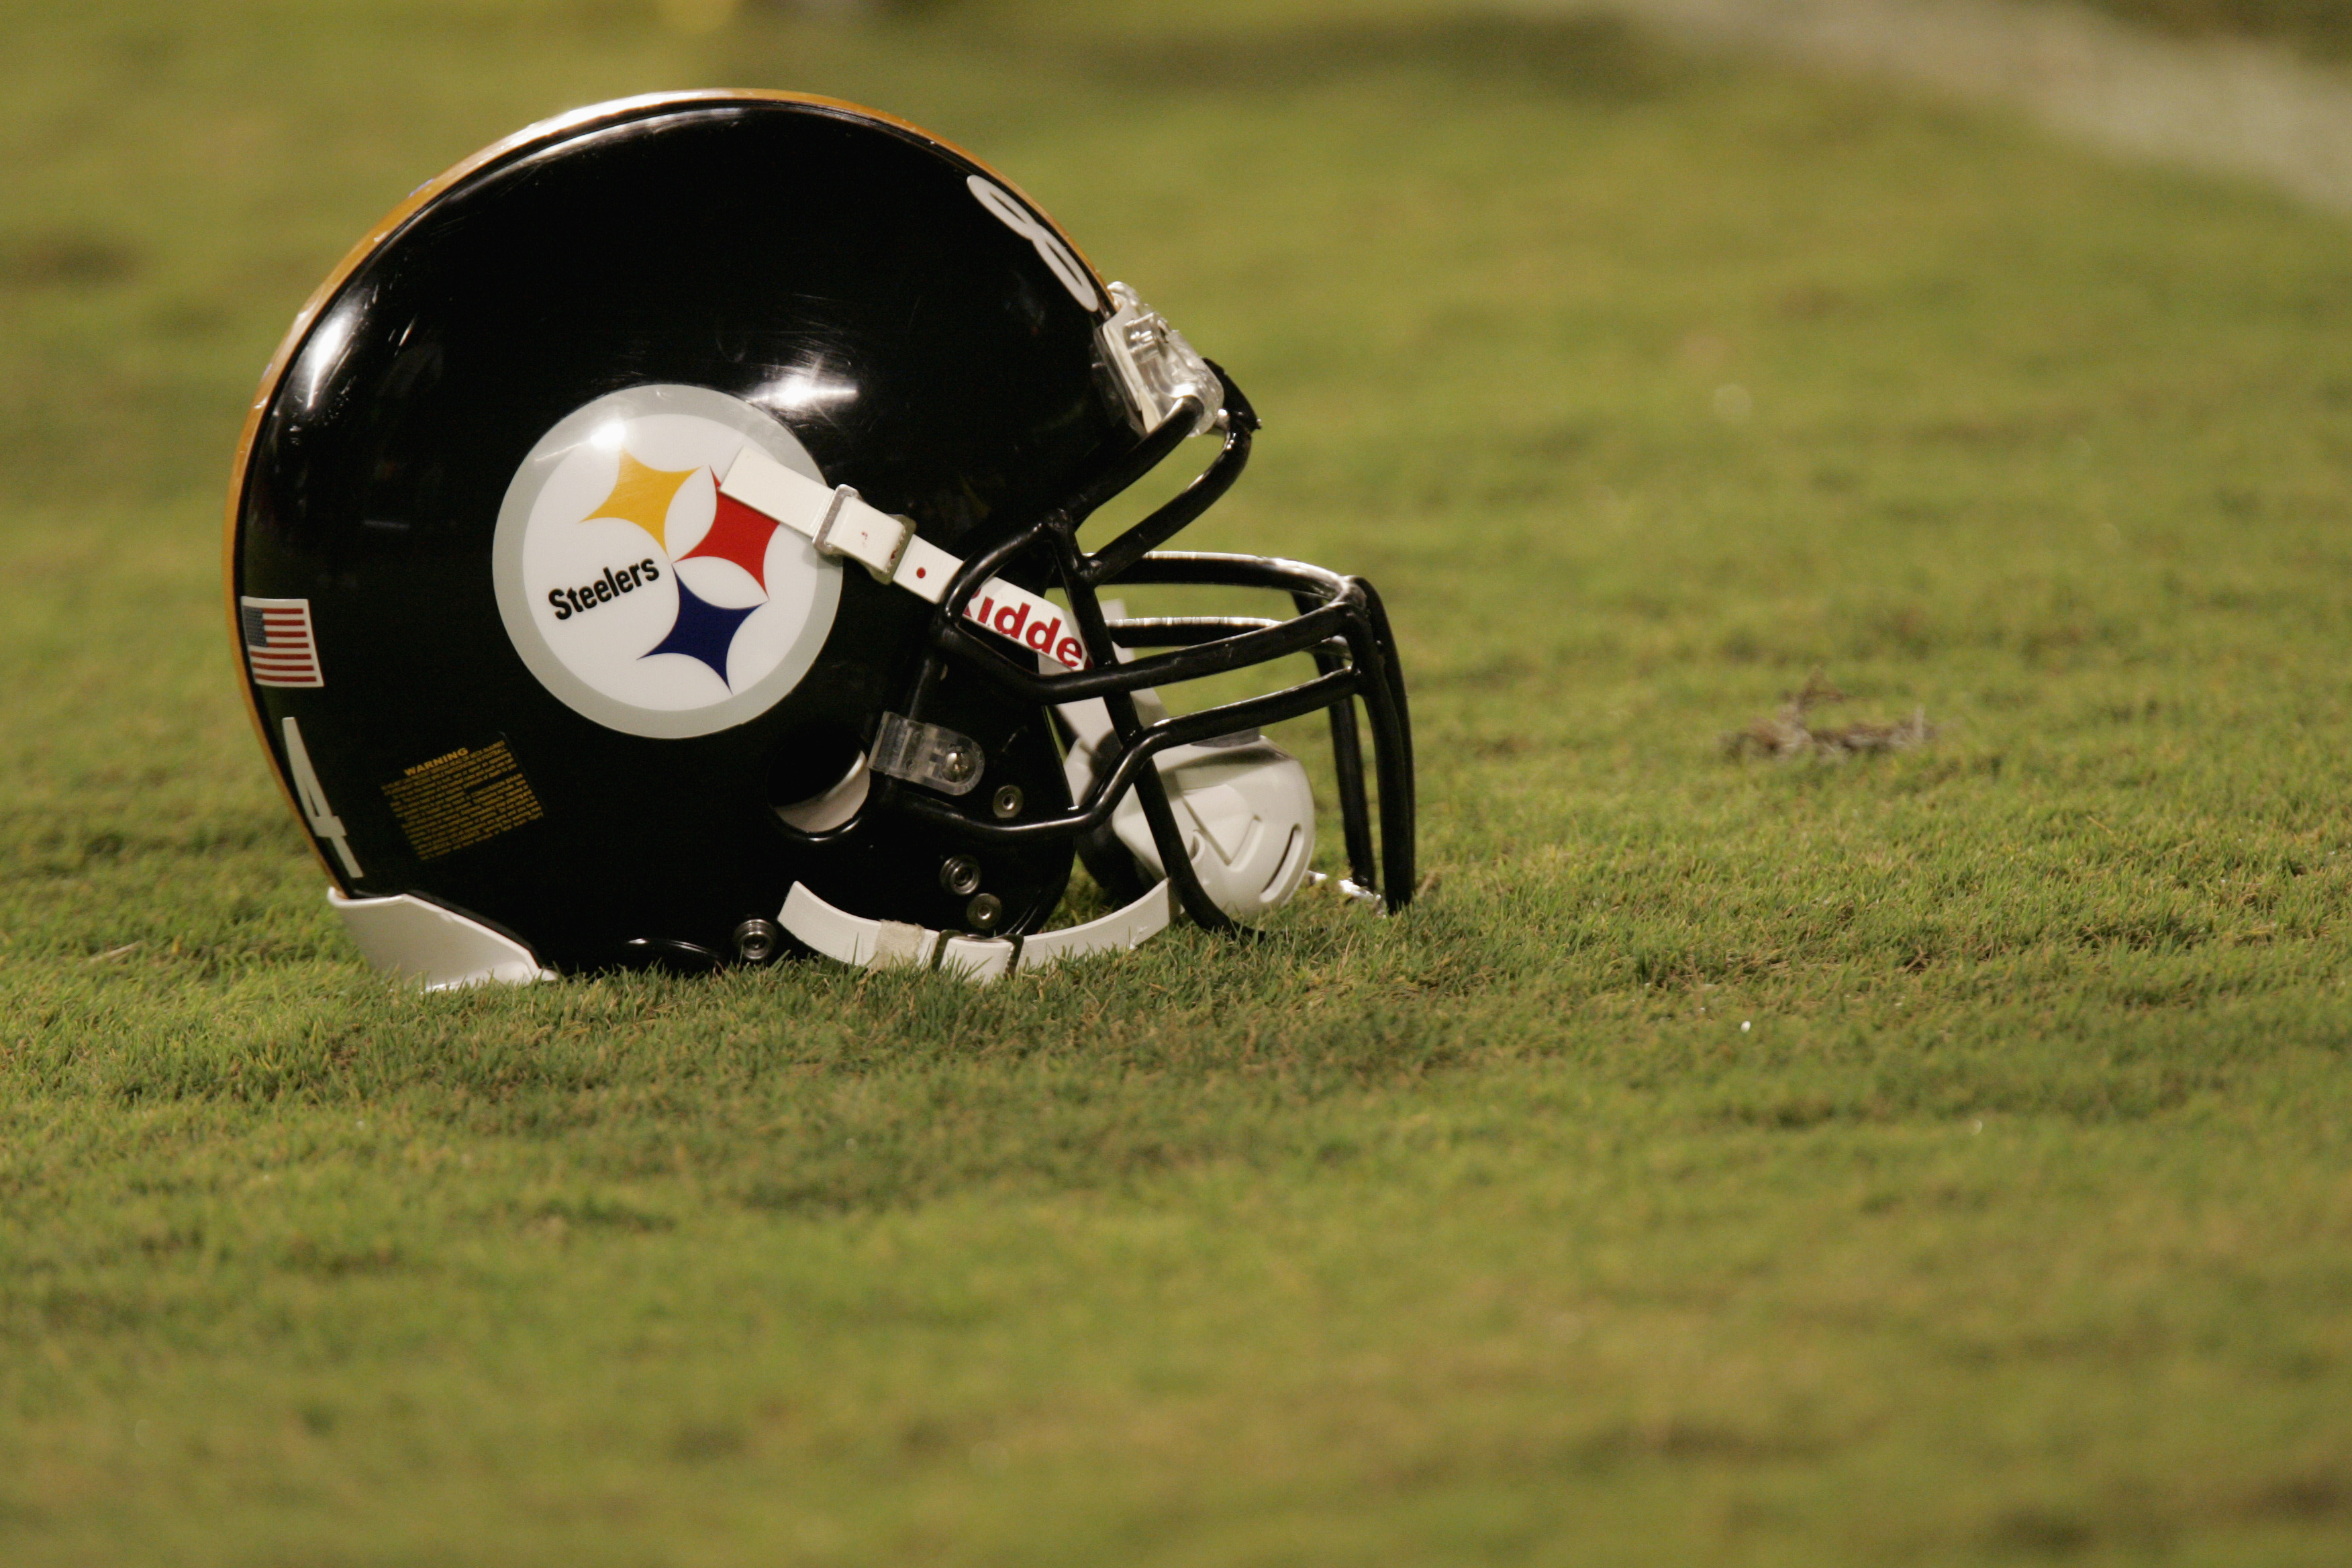 MIAMI - SEPTEMBER 26:  A Pittsburgh Steelers helmet is on the field during the game against the Miami Dolphins at Pro Player Stadium on September 26, 2004 in Miami, Florida. The Steelers won 13-3. (Photo by Eliot J. Schechter/Getty Images)